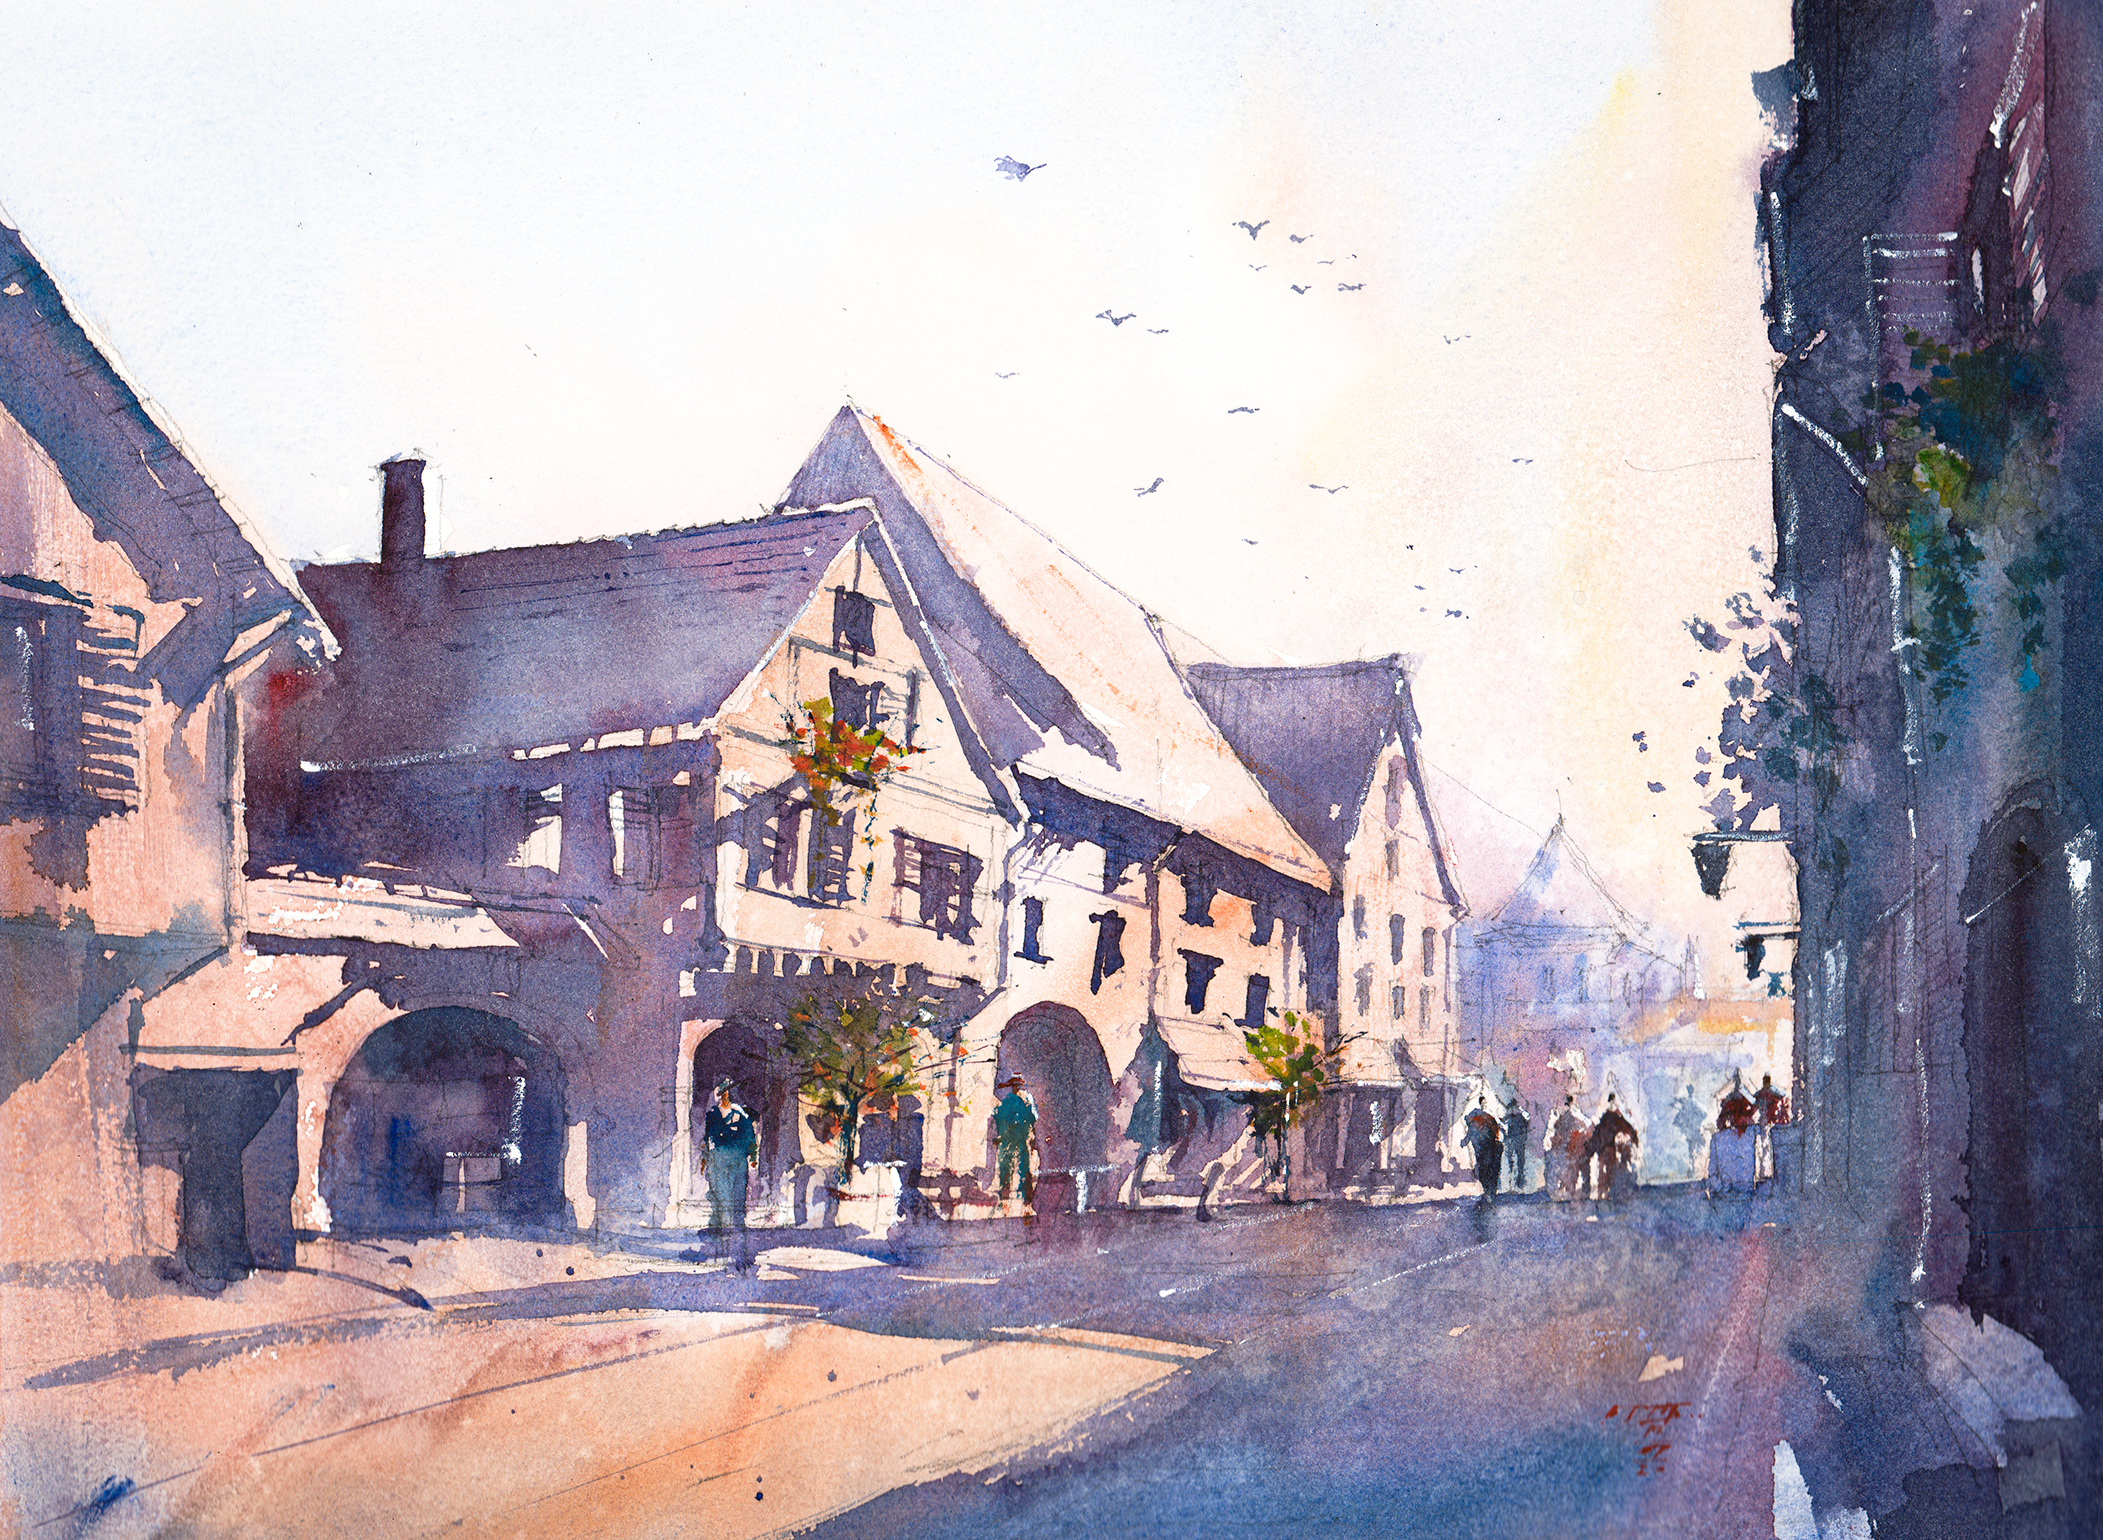 Watercolor Painting, street scene of Riquewihr, France